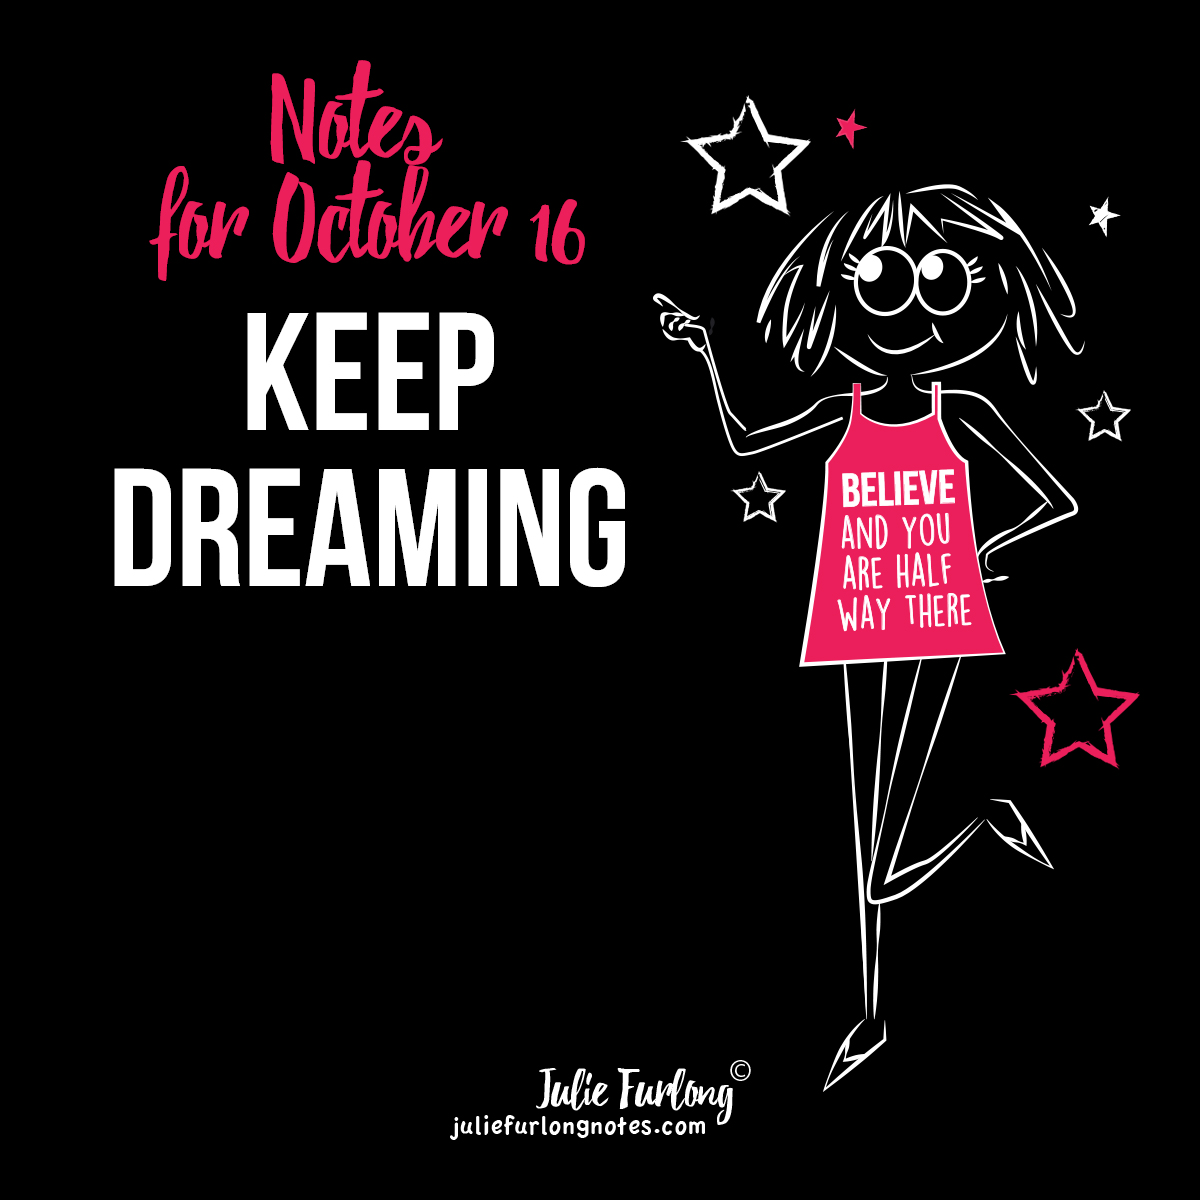 Julie-Furlong-Notes-Keep-dreaming